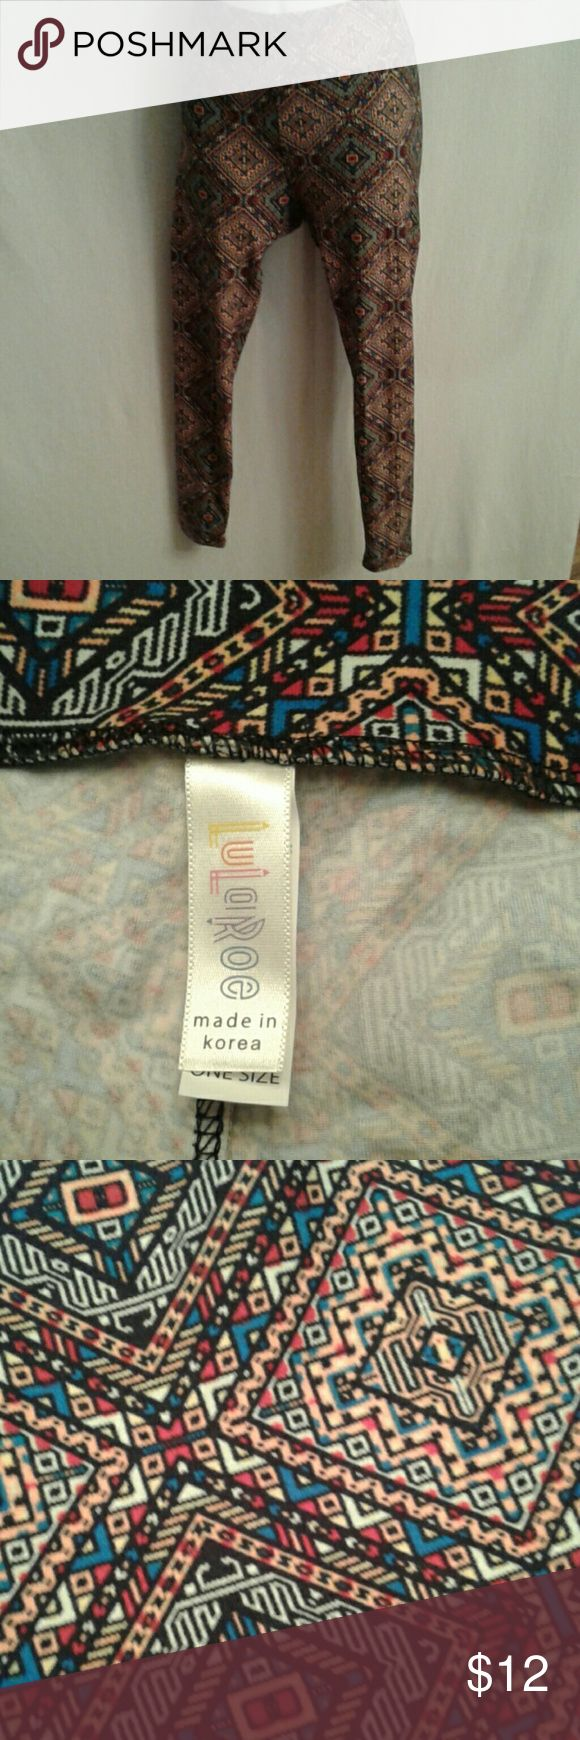 "LuLaRoe aztec print leggings sz S Aztec print leggings in EUC. The print is concentric diamonds in black, red, blue, white and  coral. It is 92/8 polyester/spandex blend, machine wash and dry. Unstretched, the cummberbund waist measures 12 1/2"", the inseam is 24 1/2"", unstretched, and the front drop is 10 -/2"" and the back drop is 13"".  The waistband could also be folded over for a different look. LuLaRoe Pants Leggings"